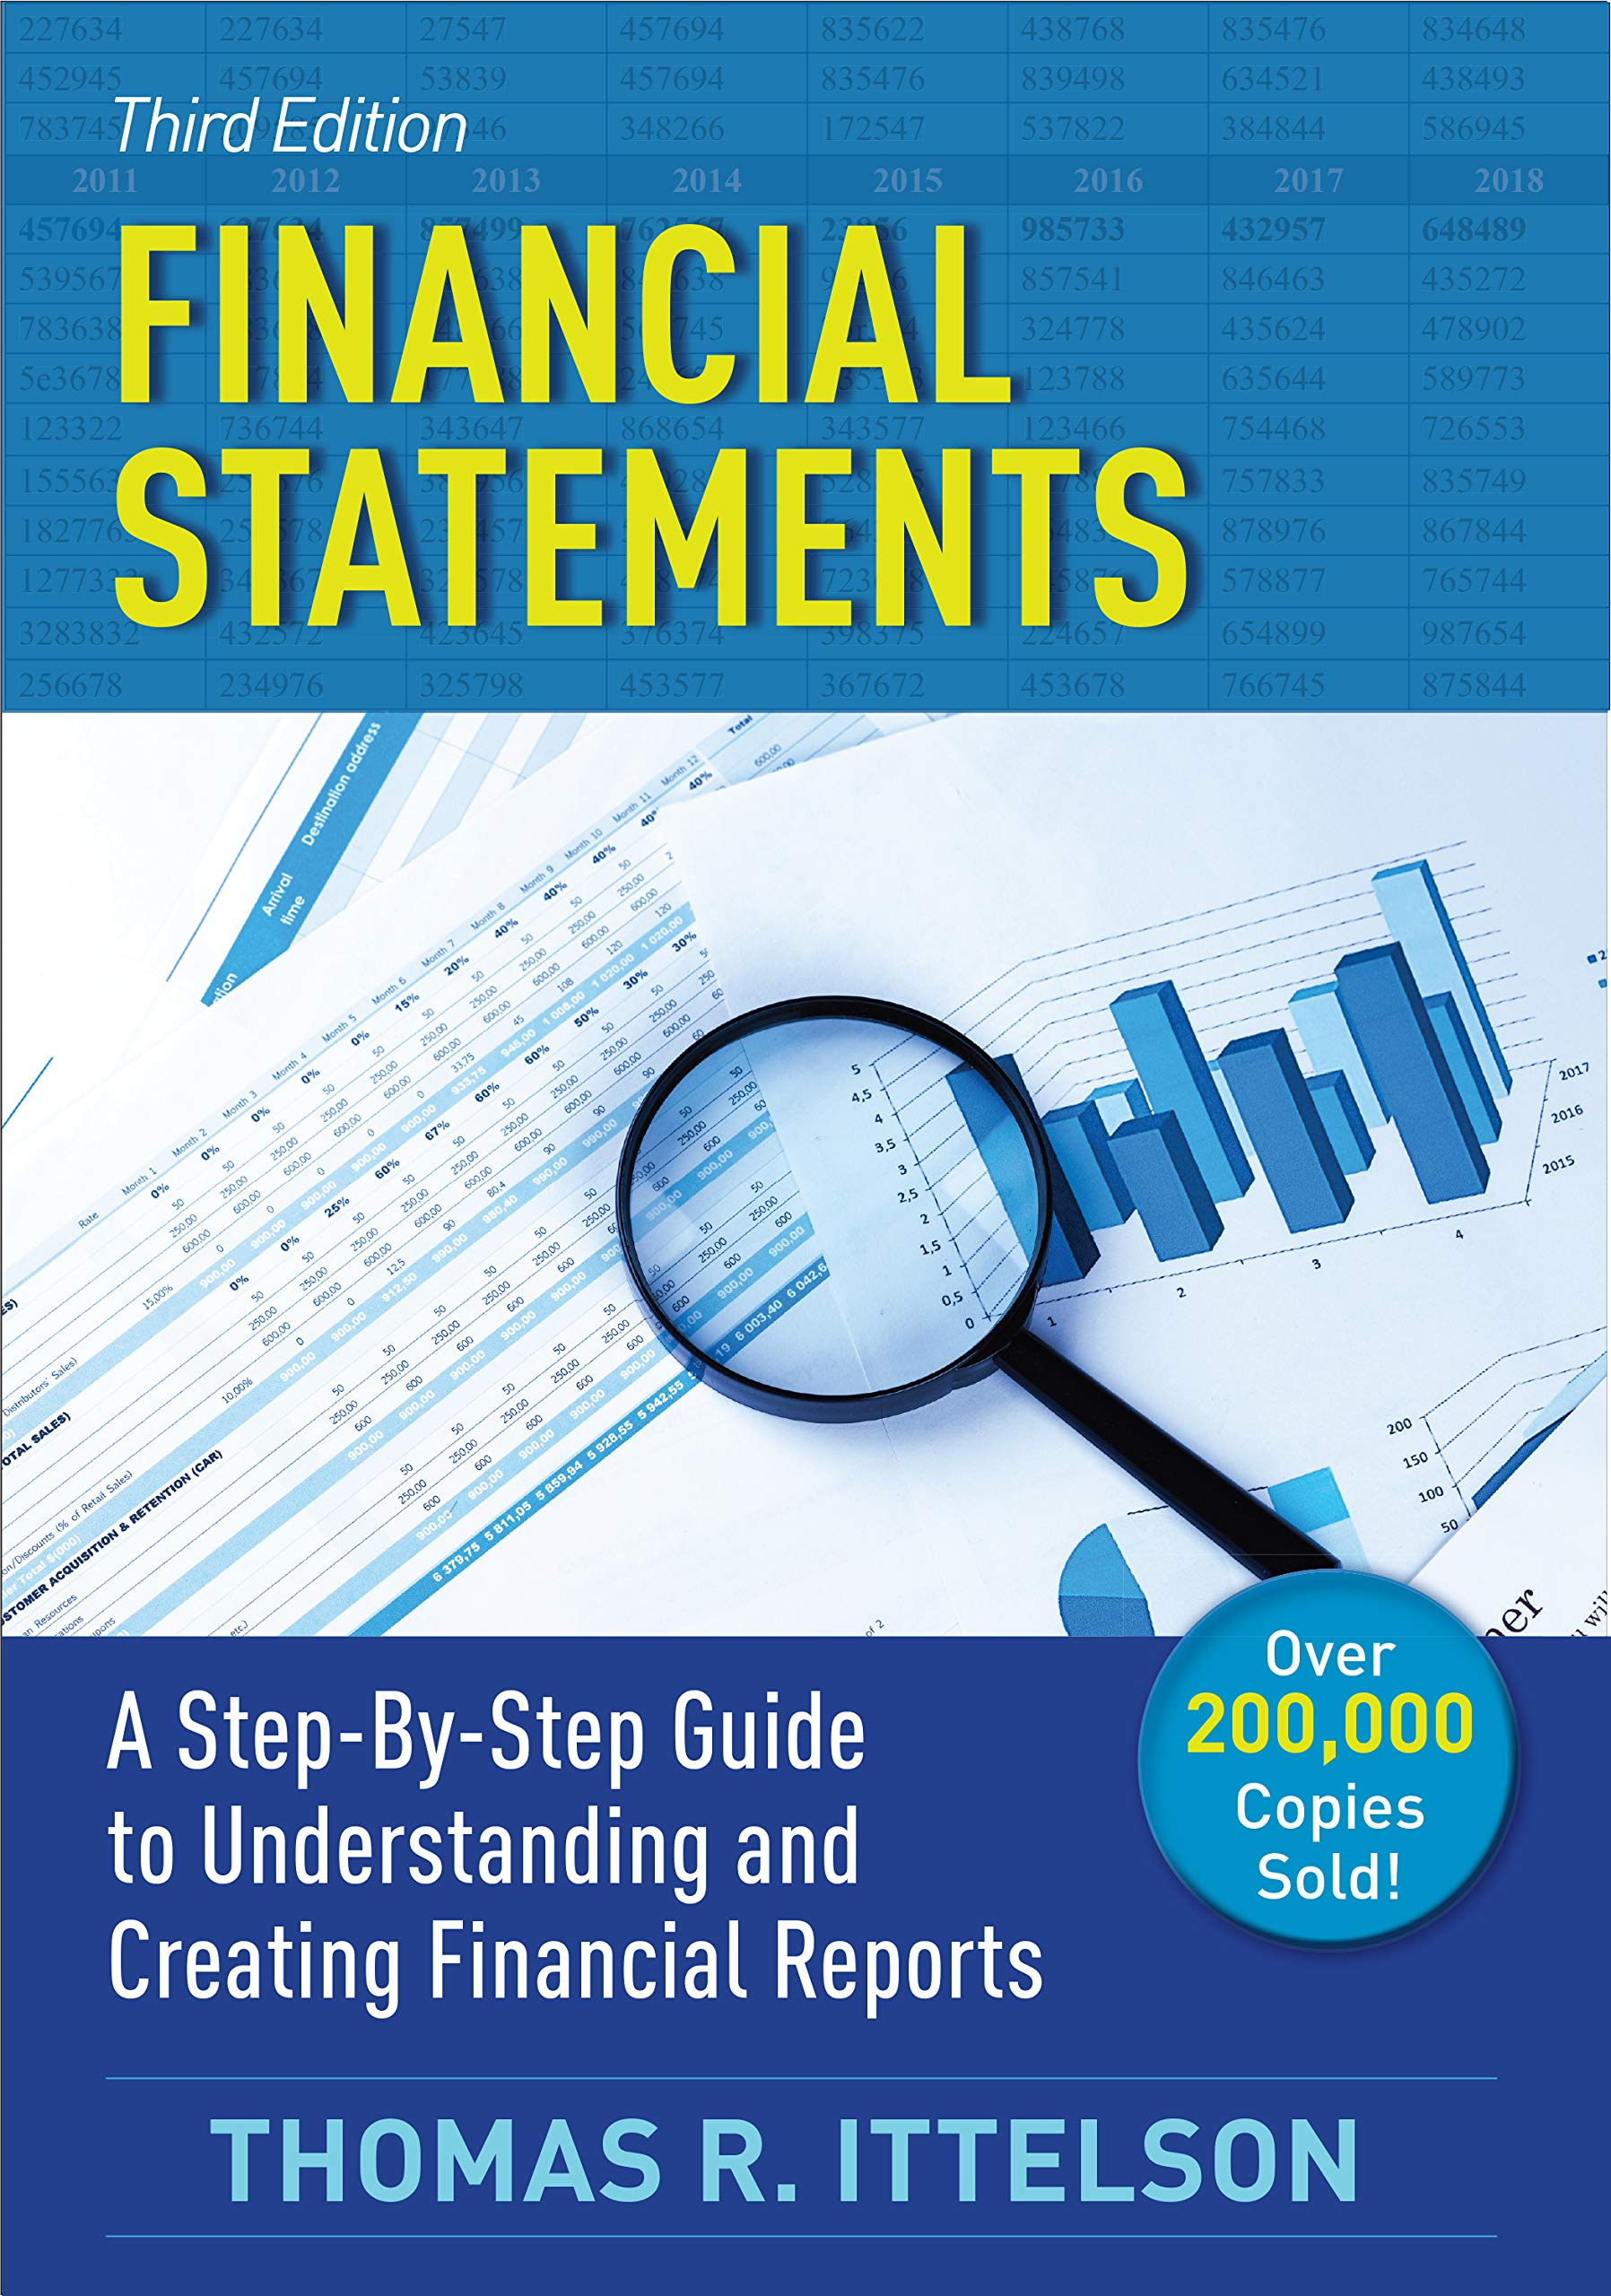 Image OfFinancial Statements, Third Edition: A Step-by-Step Guide To Understanding And Creating Financial Reports (Over 200,000 Co...